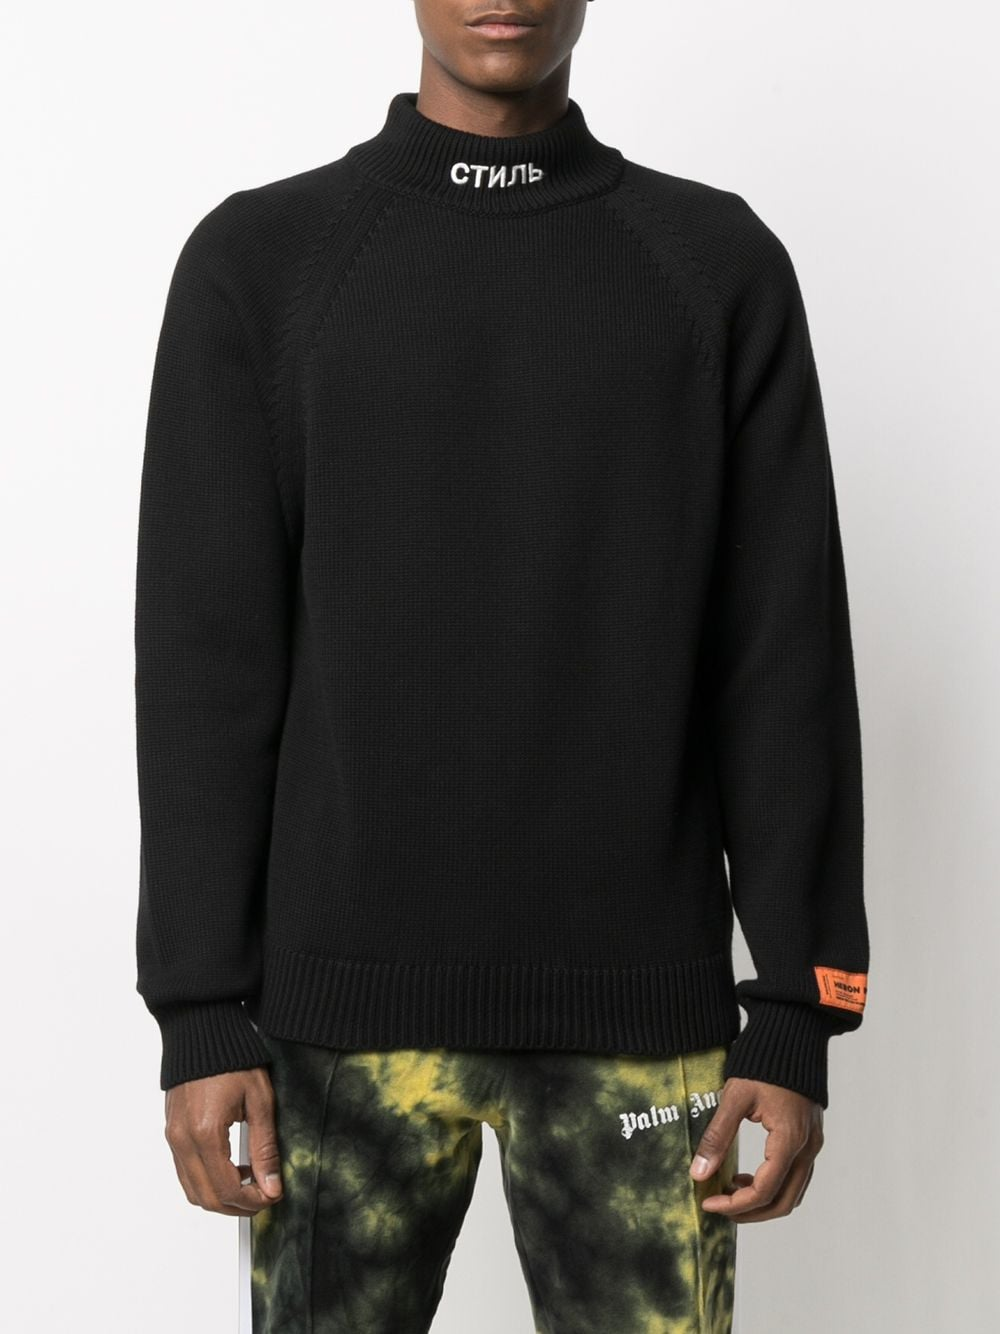 HERON PRESTON MEN KNIT CTNMB TURTLE NECK